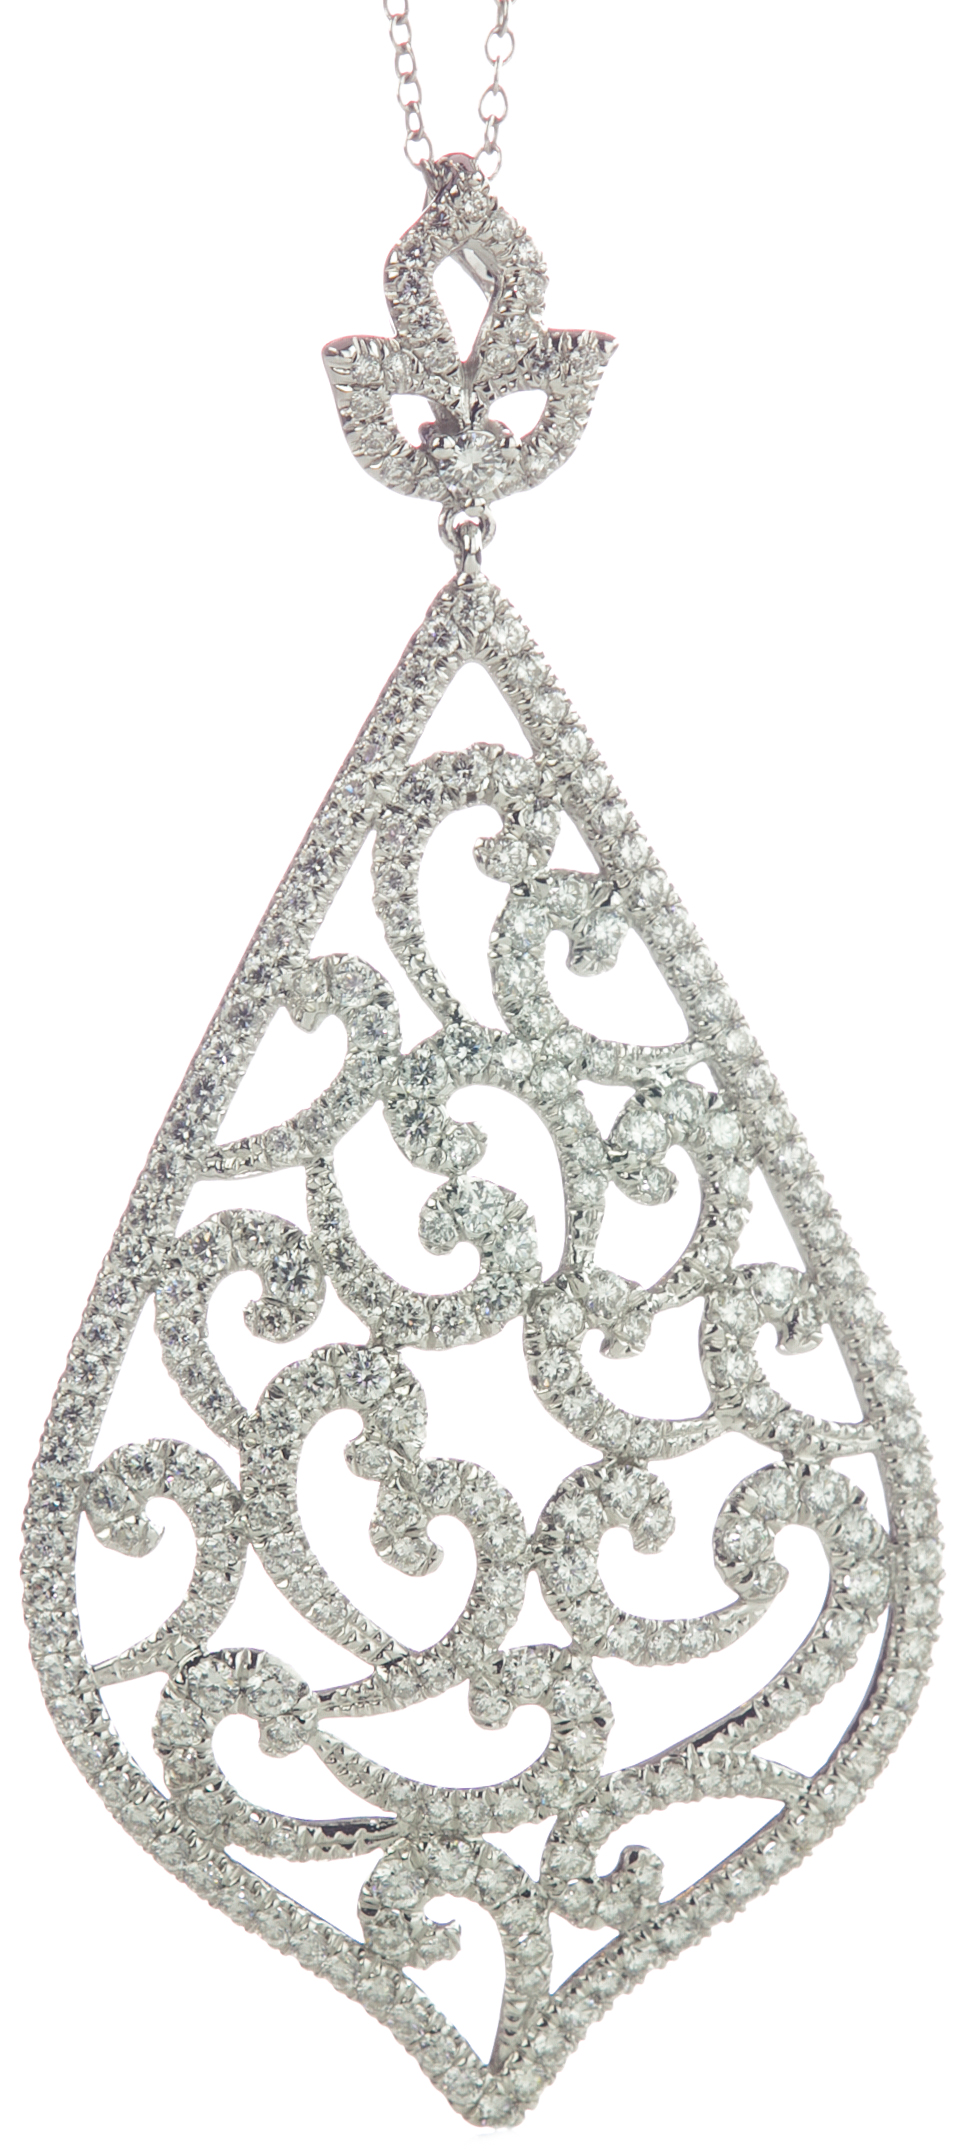 18K WHITE GOLD PEAR SHAPED PAVE DIAMOND PENDANT